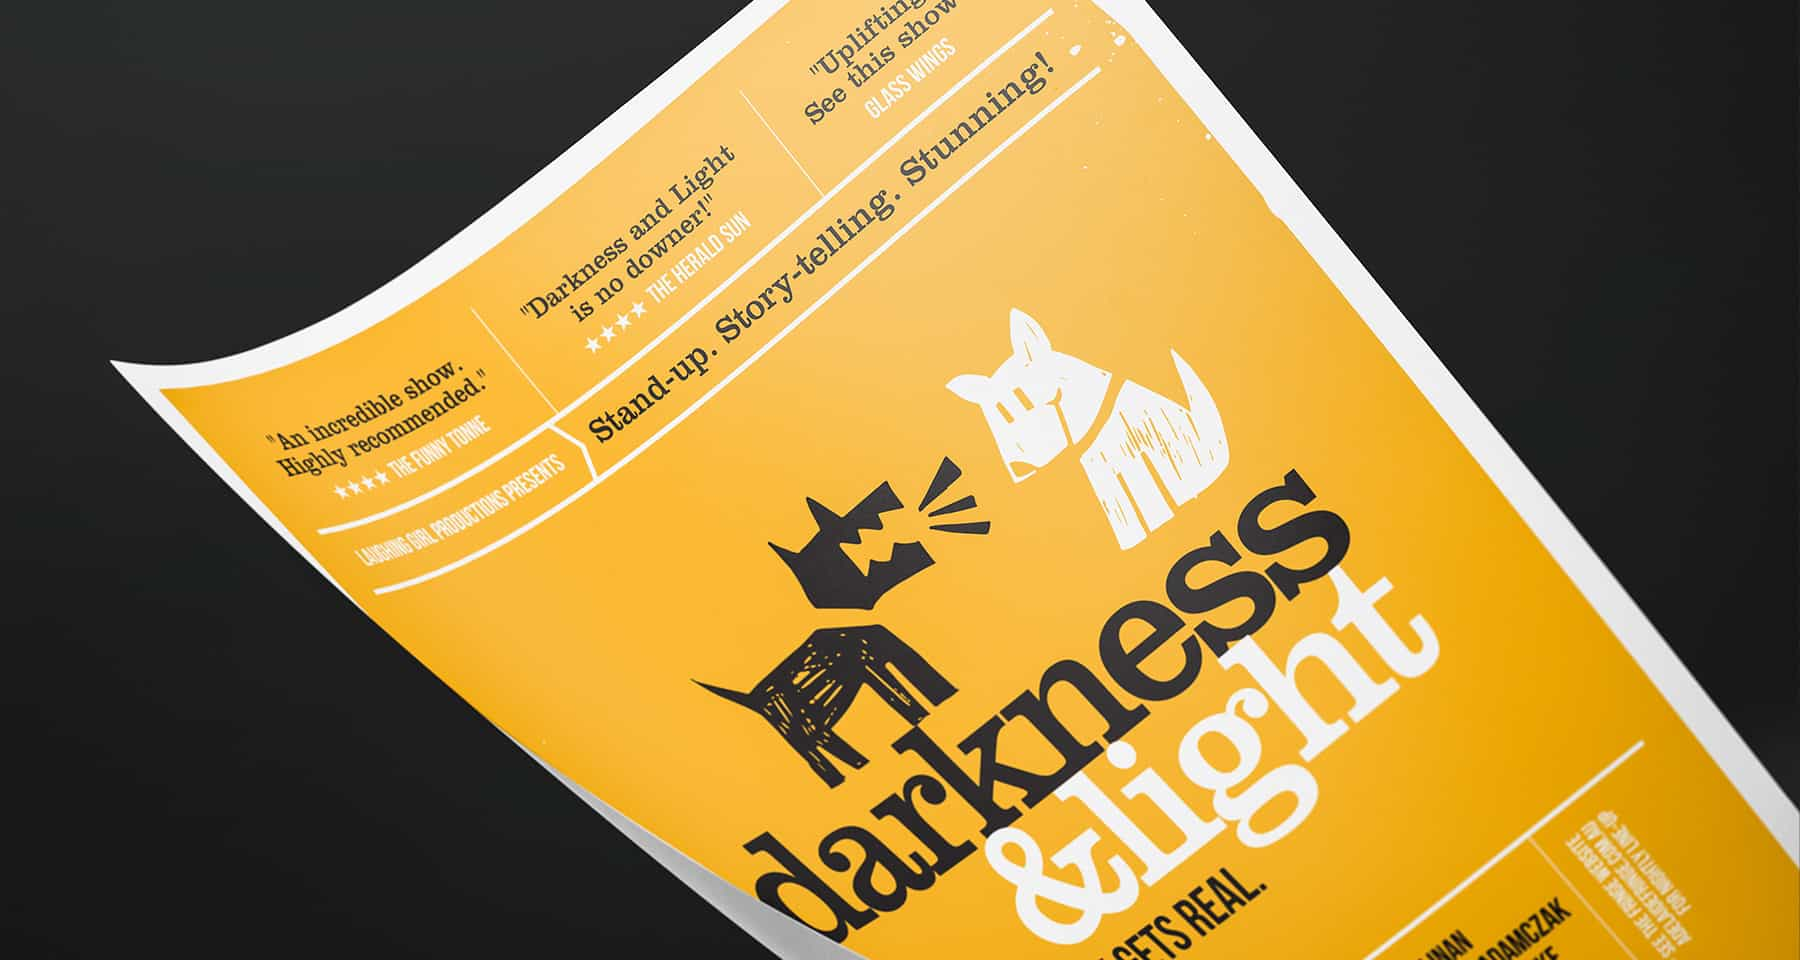 Darkness & Light Event Branding